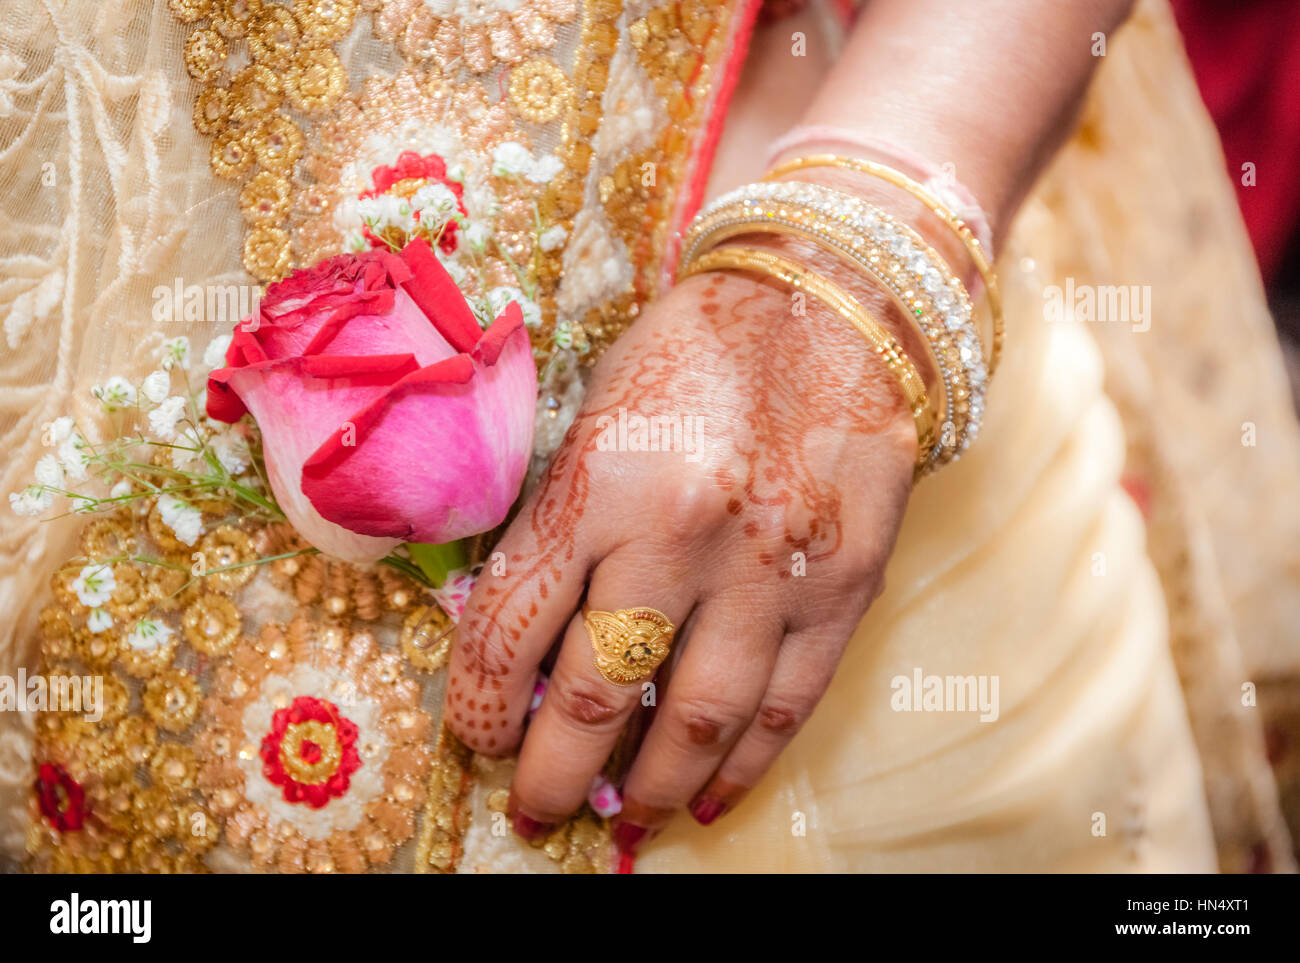 Indian Bride Hand Painted With Henna Tattoo Holding A Red Rose